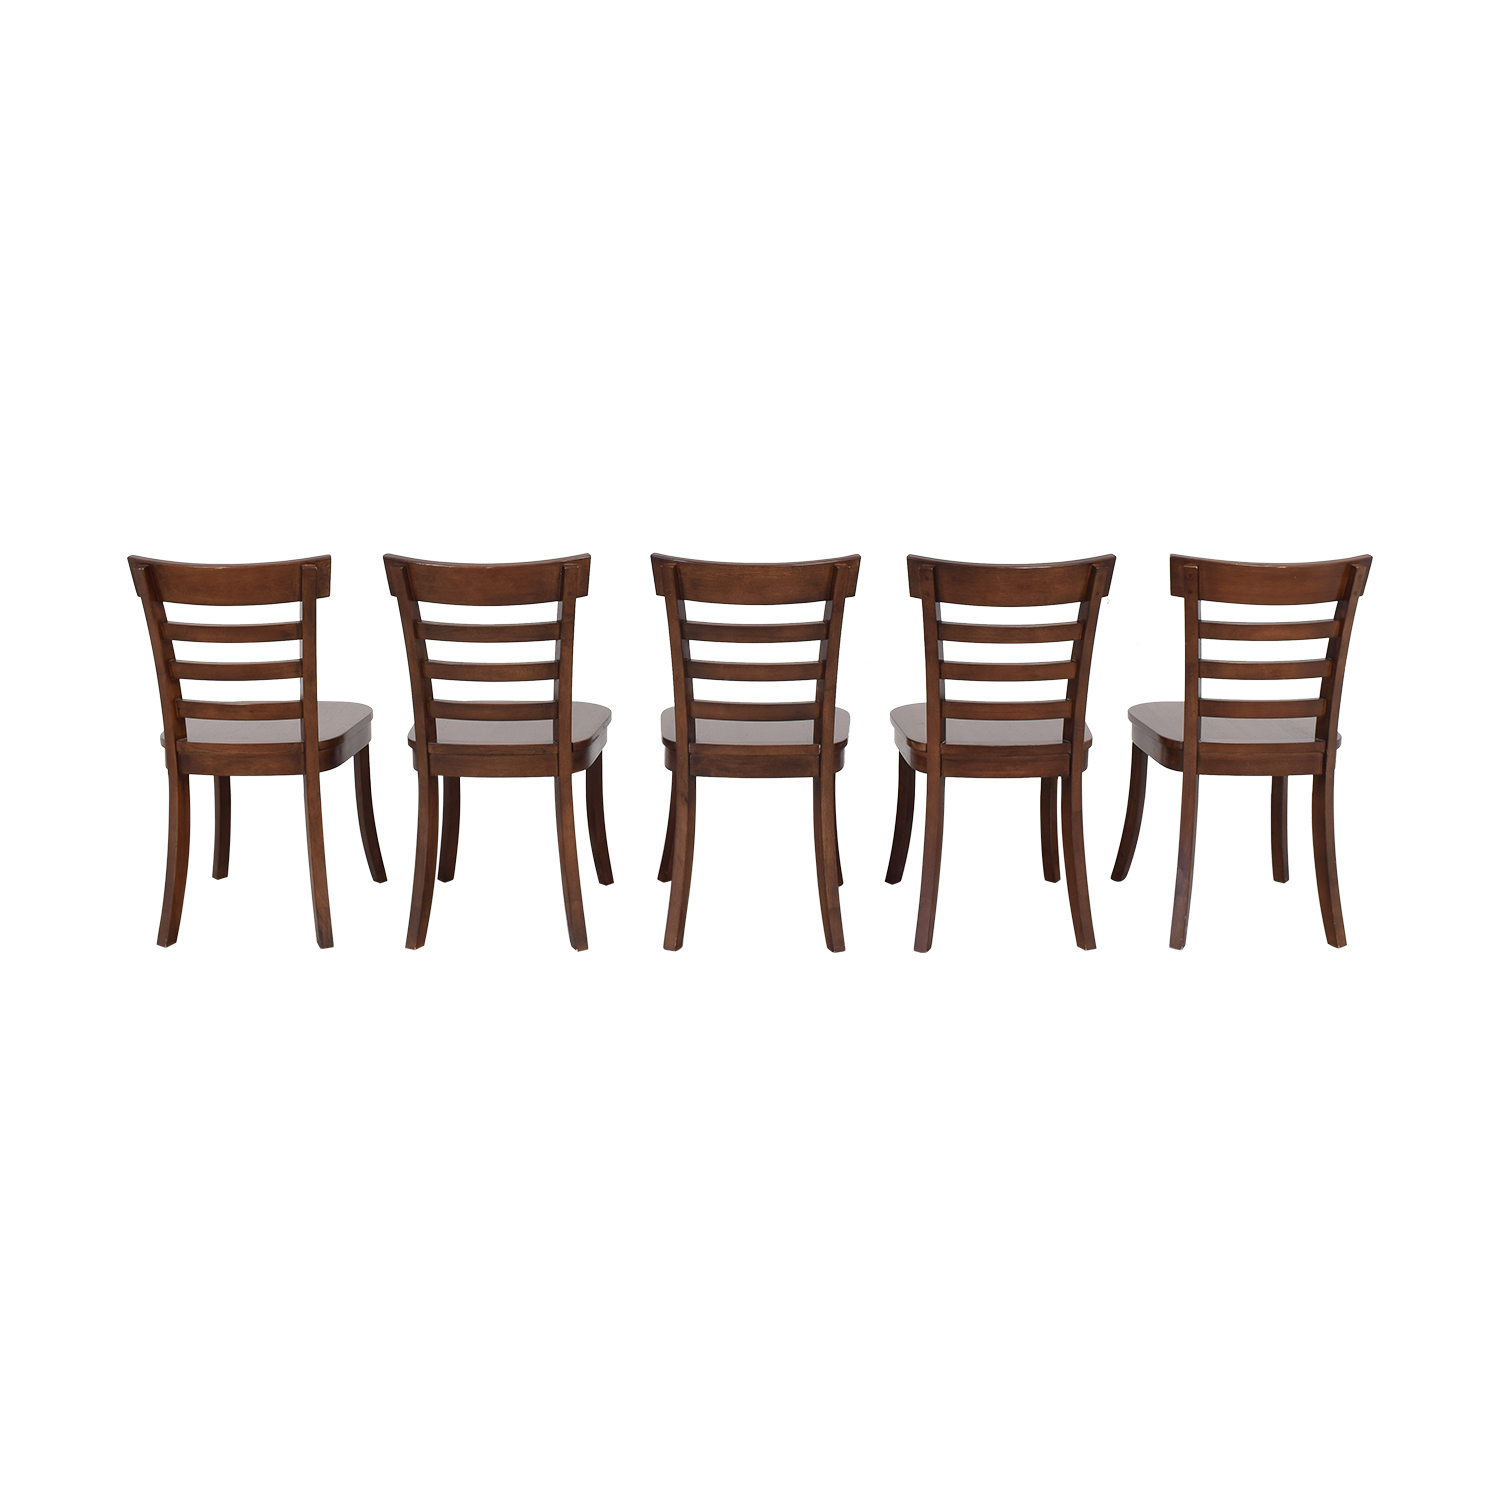 Pottery Barn Pottery Barn Liam Dining Side Chairs nyc